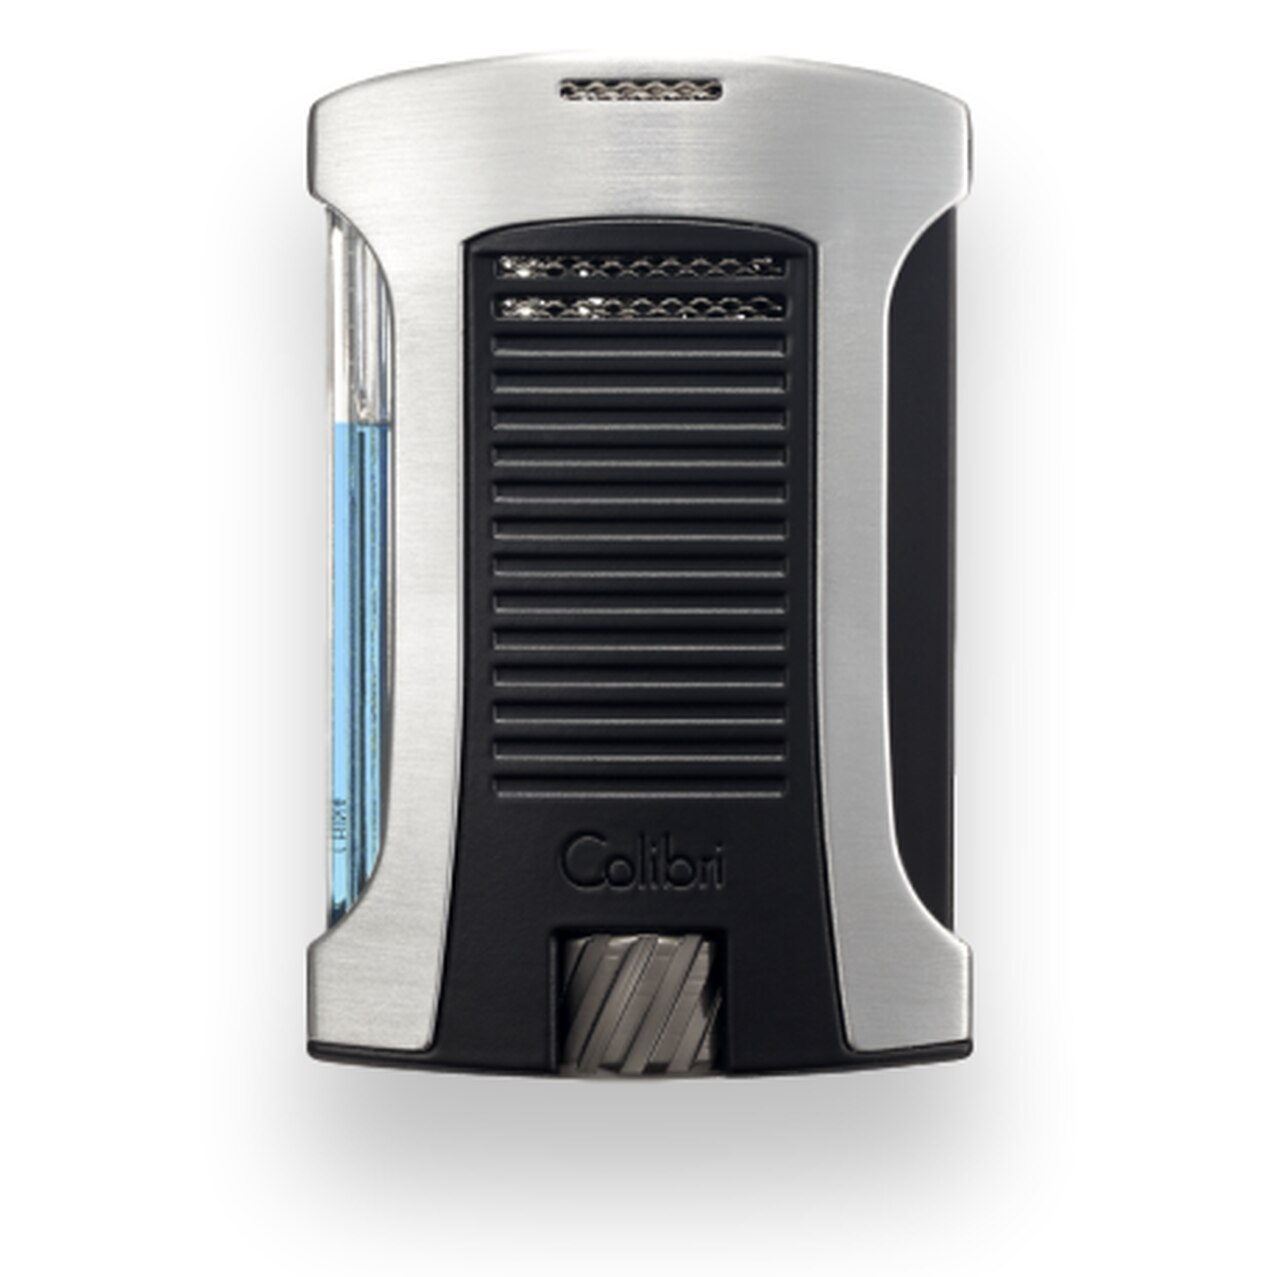 m-colibri-chrome-daytona-torch-flame-single-jet-cigar-lighter-exterior-1.png